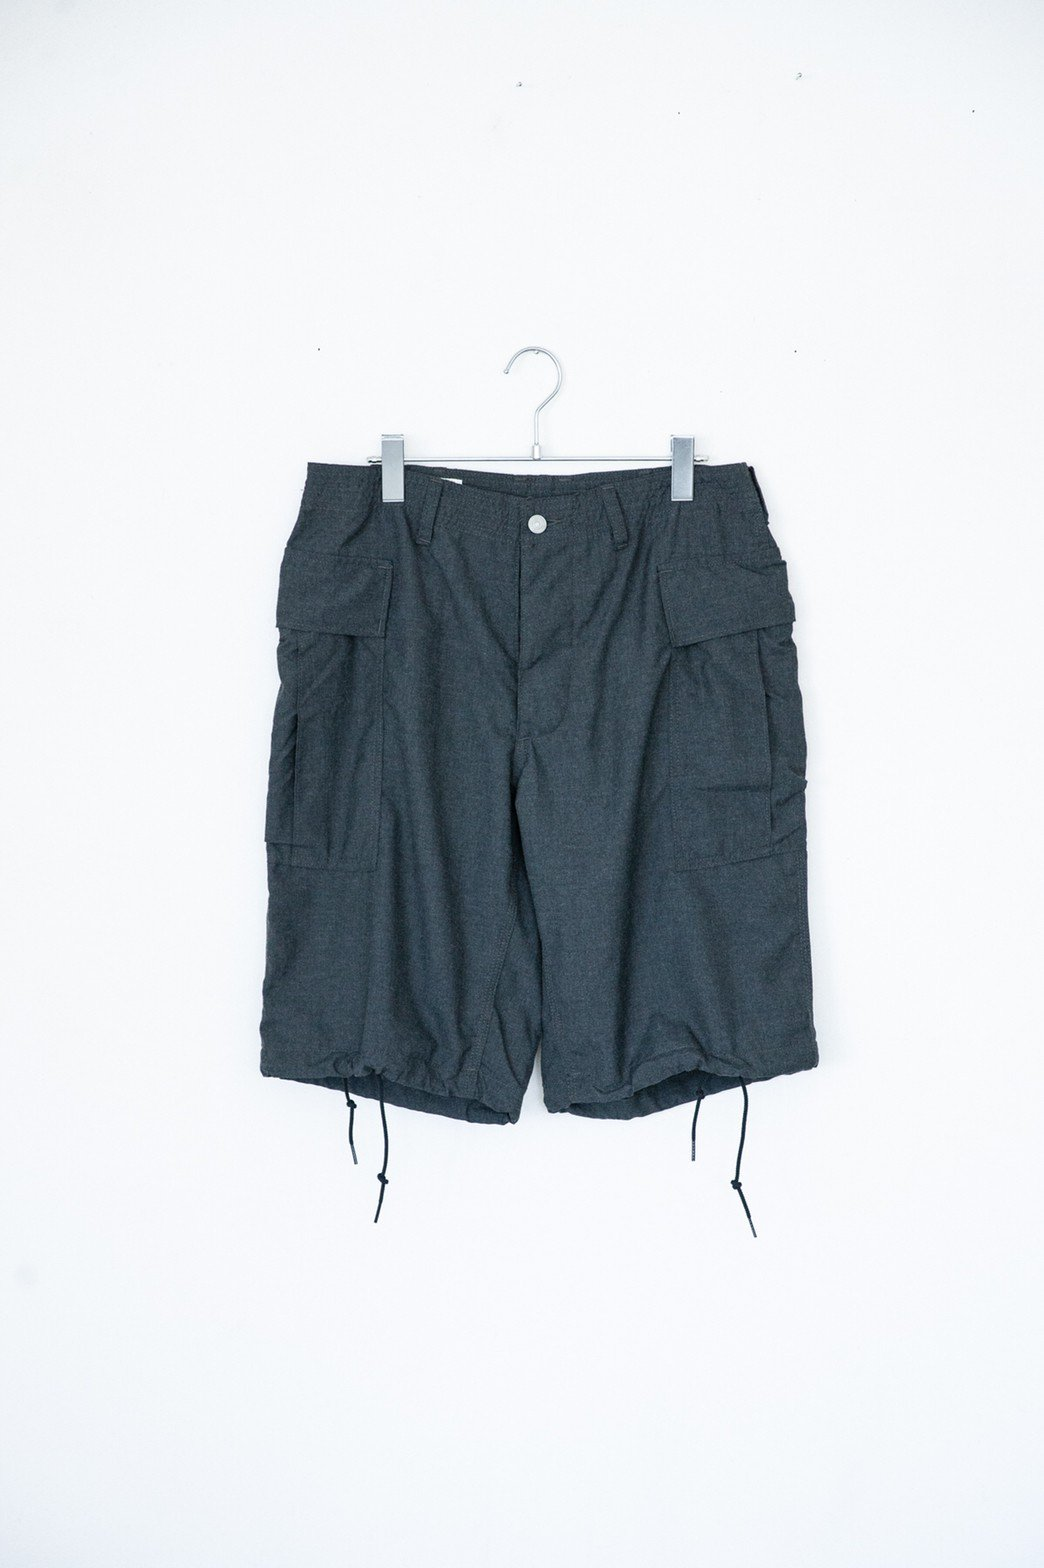 SASSAFRAS / Trug Fatigue Pants 1/2